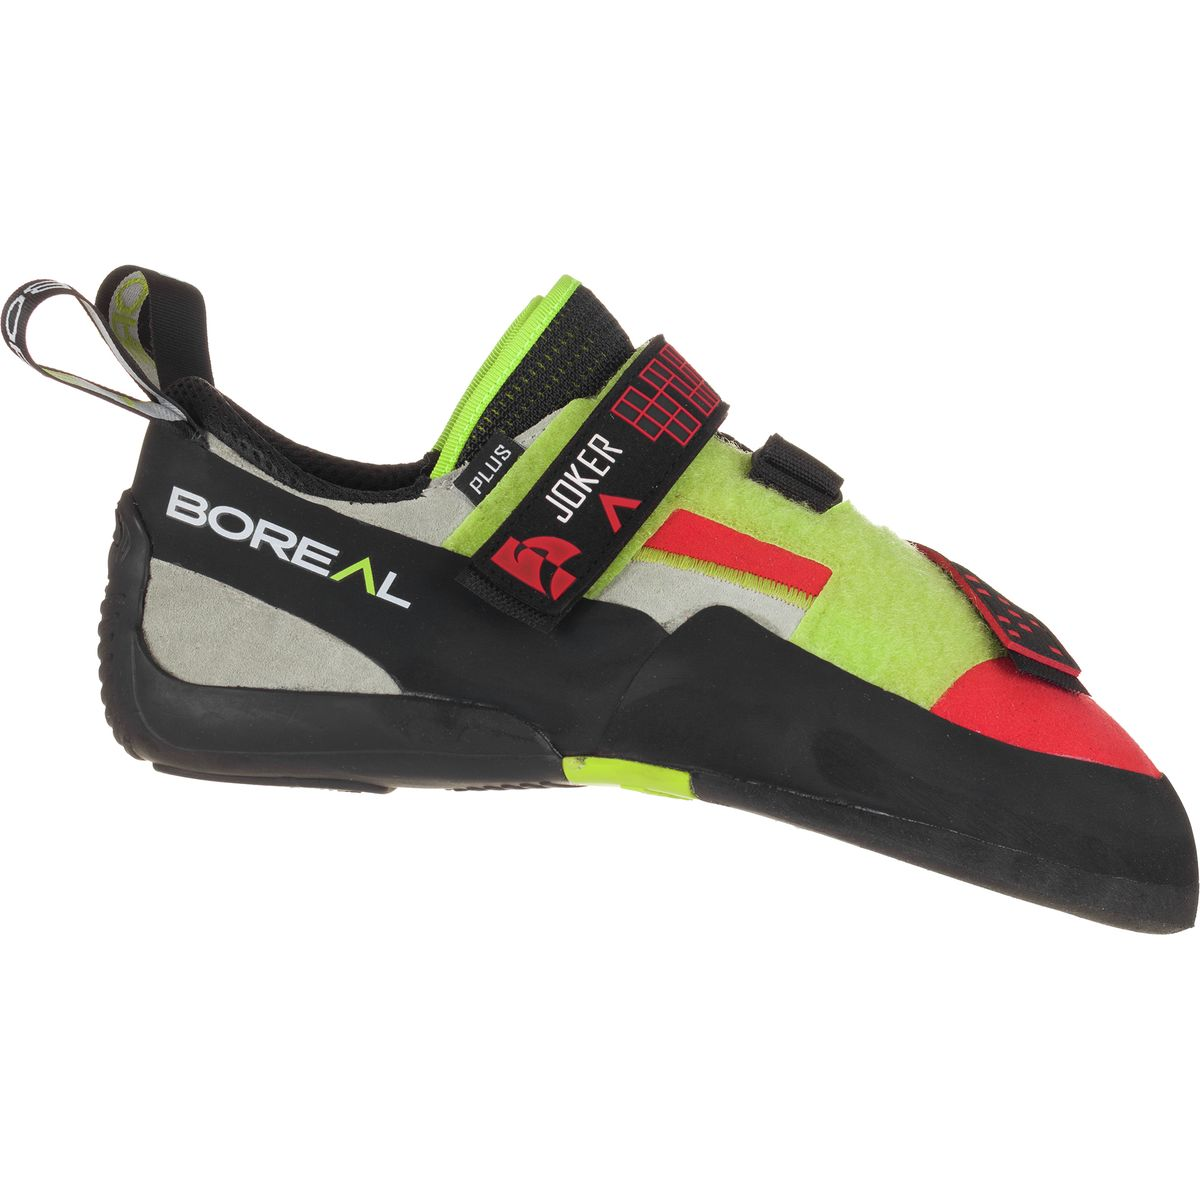 Boreal Joker Plus Velcro